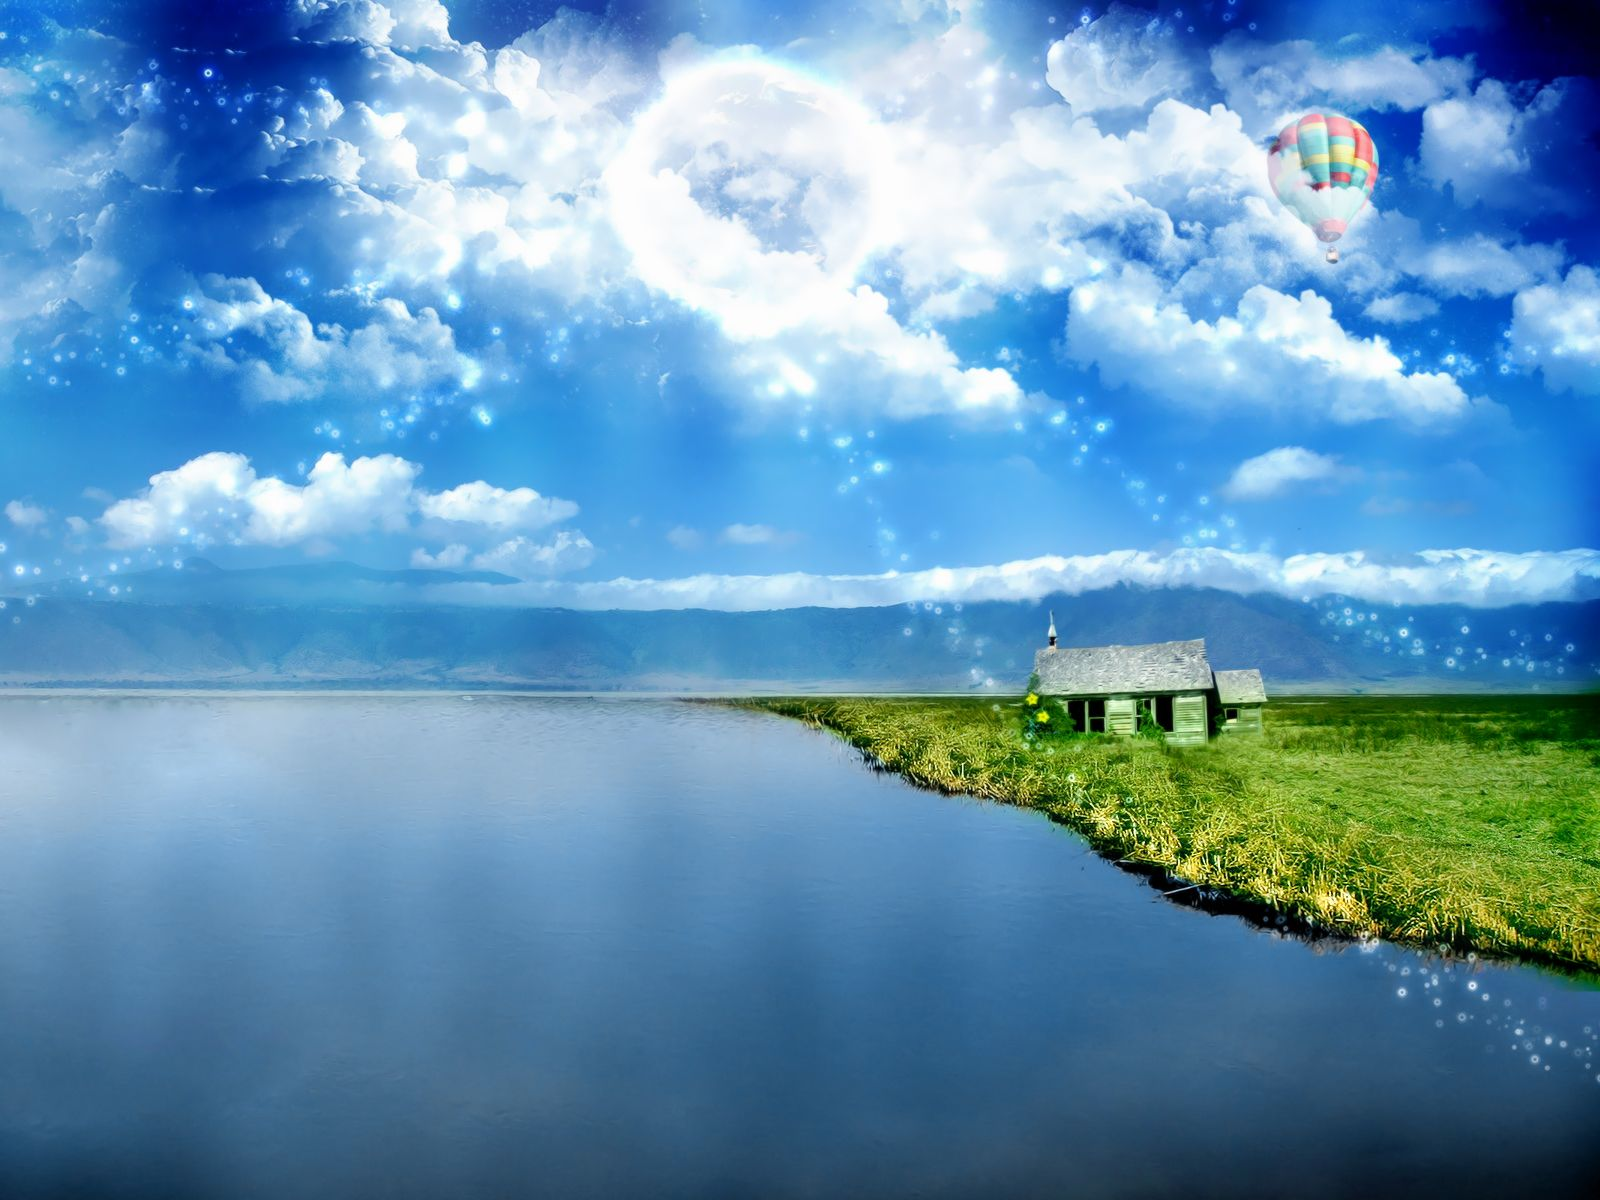 HD Landscape Wallpapers Of My Dream World For Widescreen Laptop